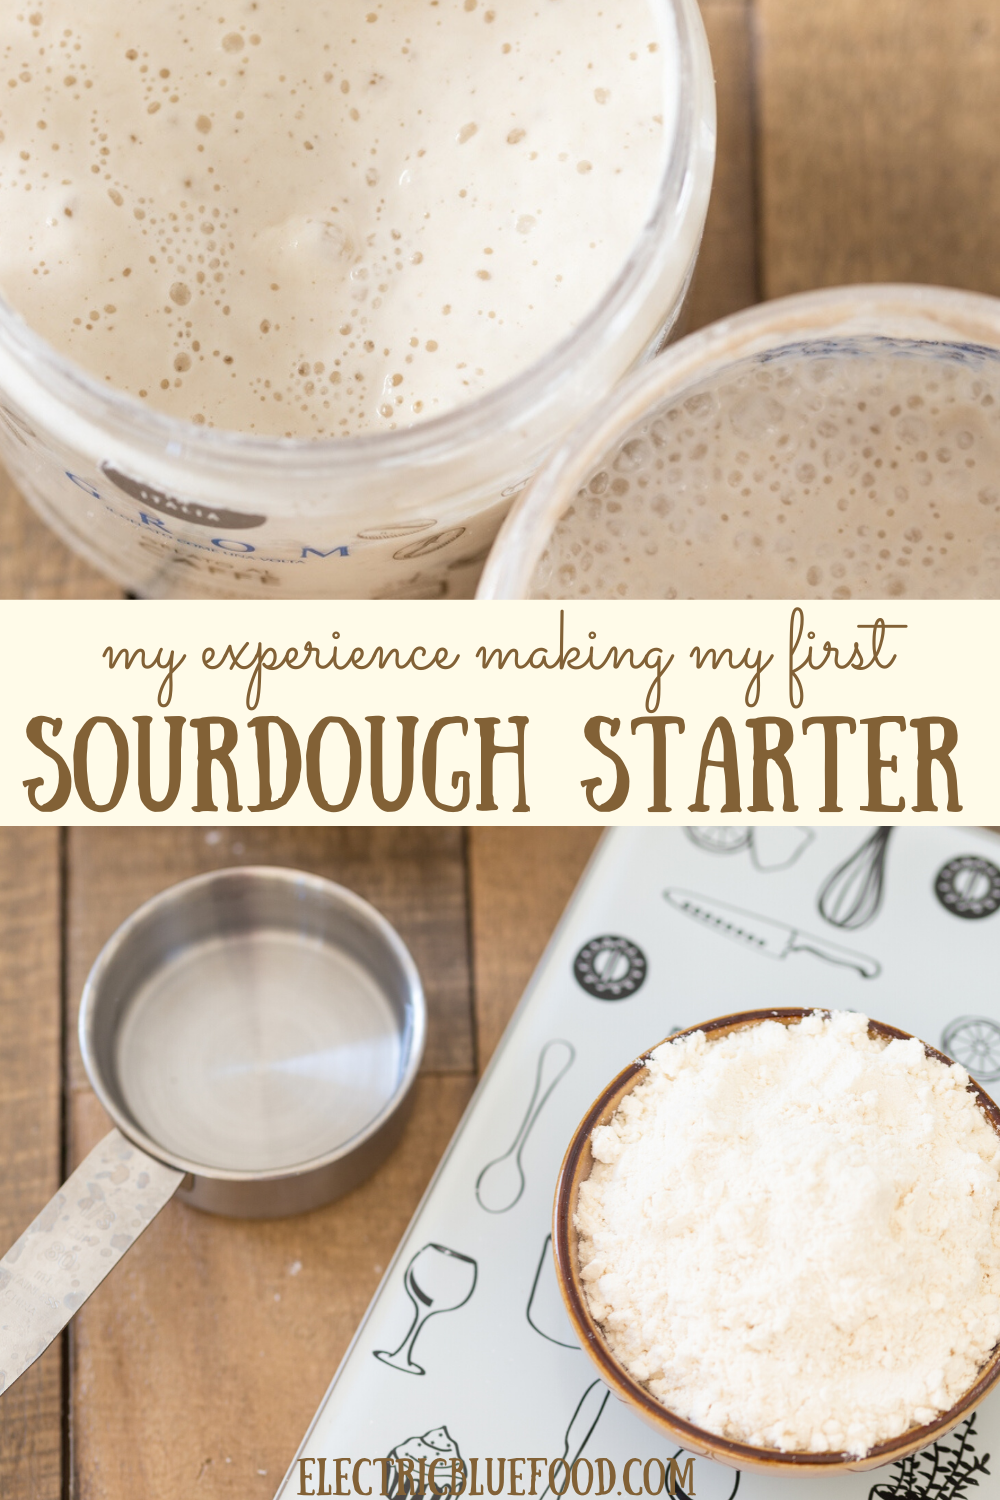 Make your first sourdough starter: it's easier than you'd think. Read my sourdough starter for dummies, aka my experience making my first sourdough.